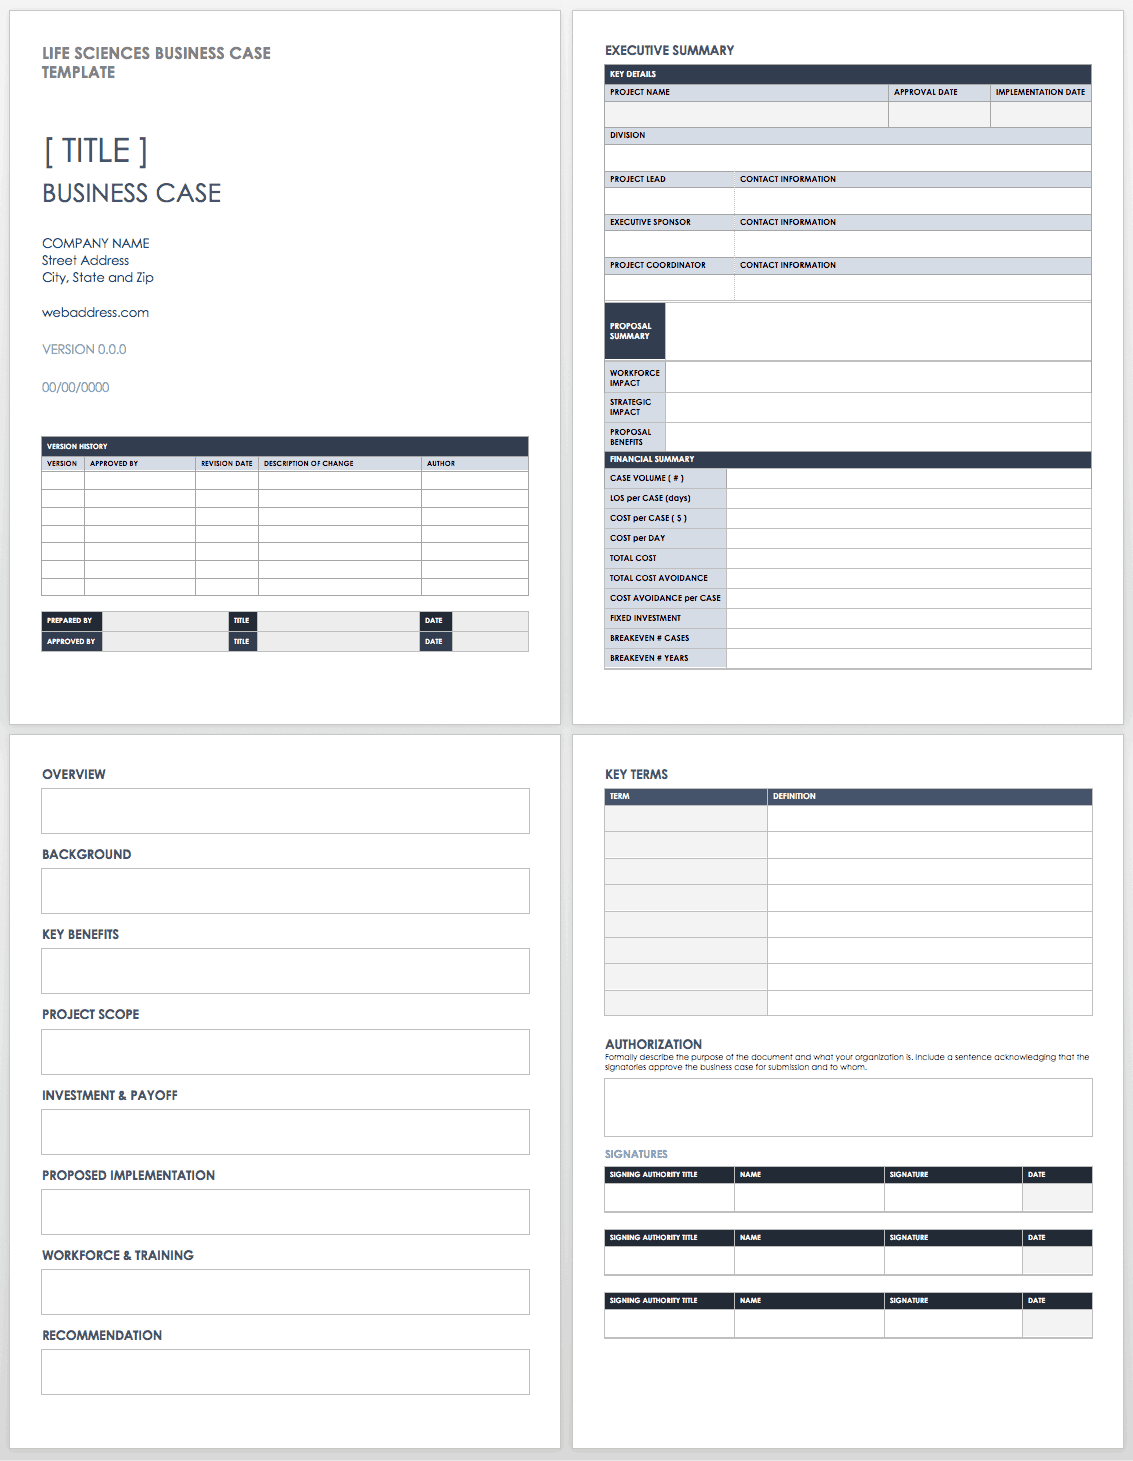 Free business case templates smartsheet life sciences business case wajeb Image collections